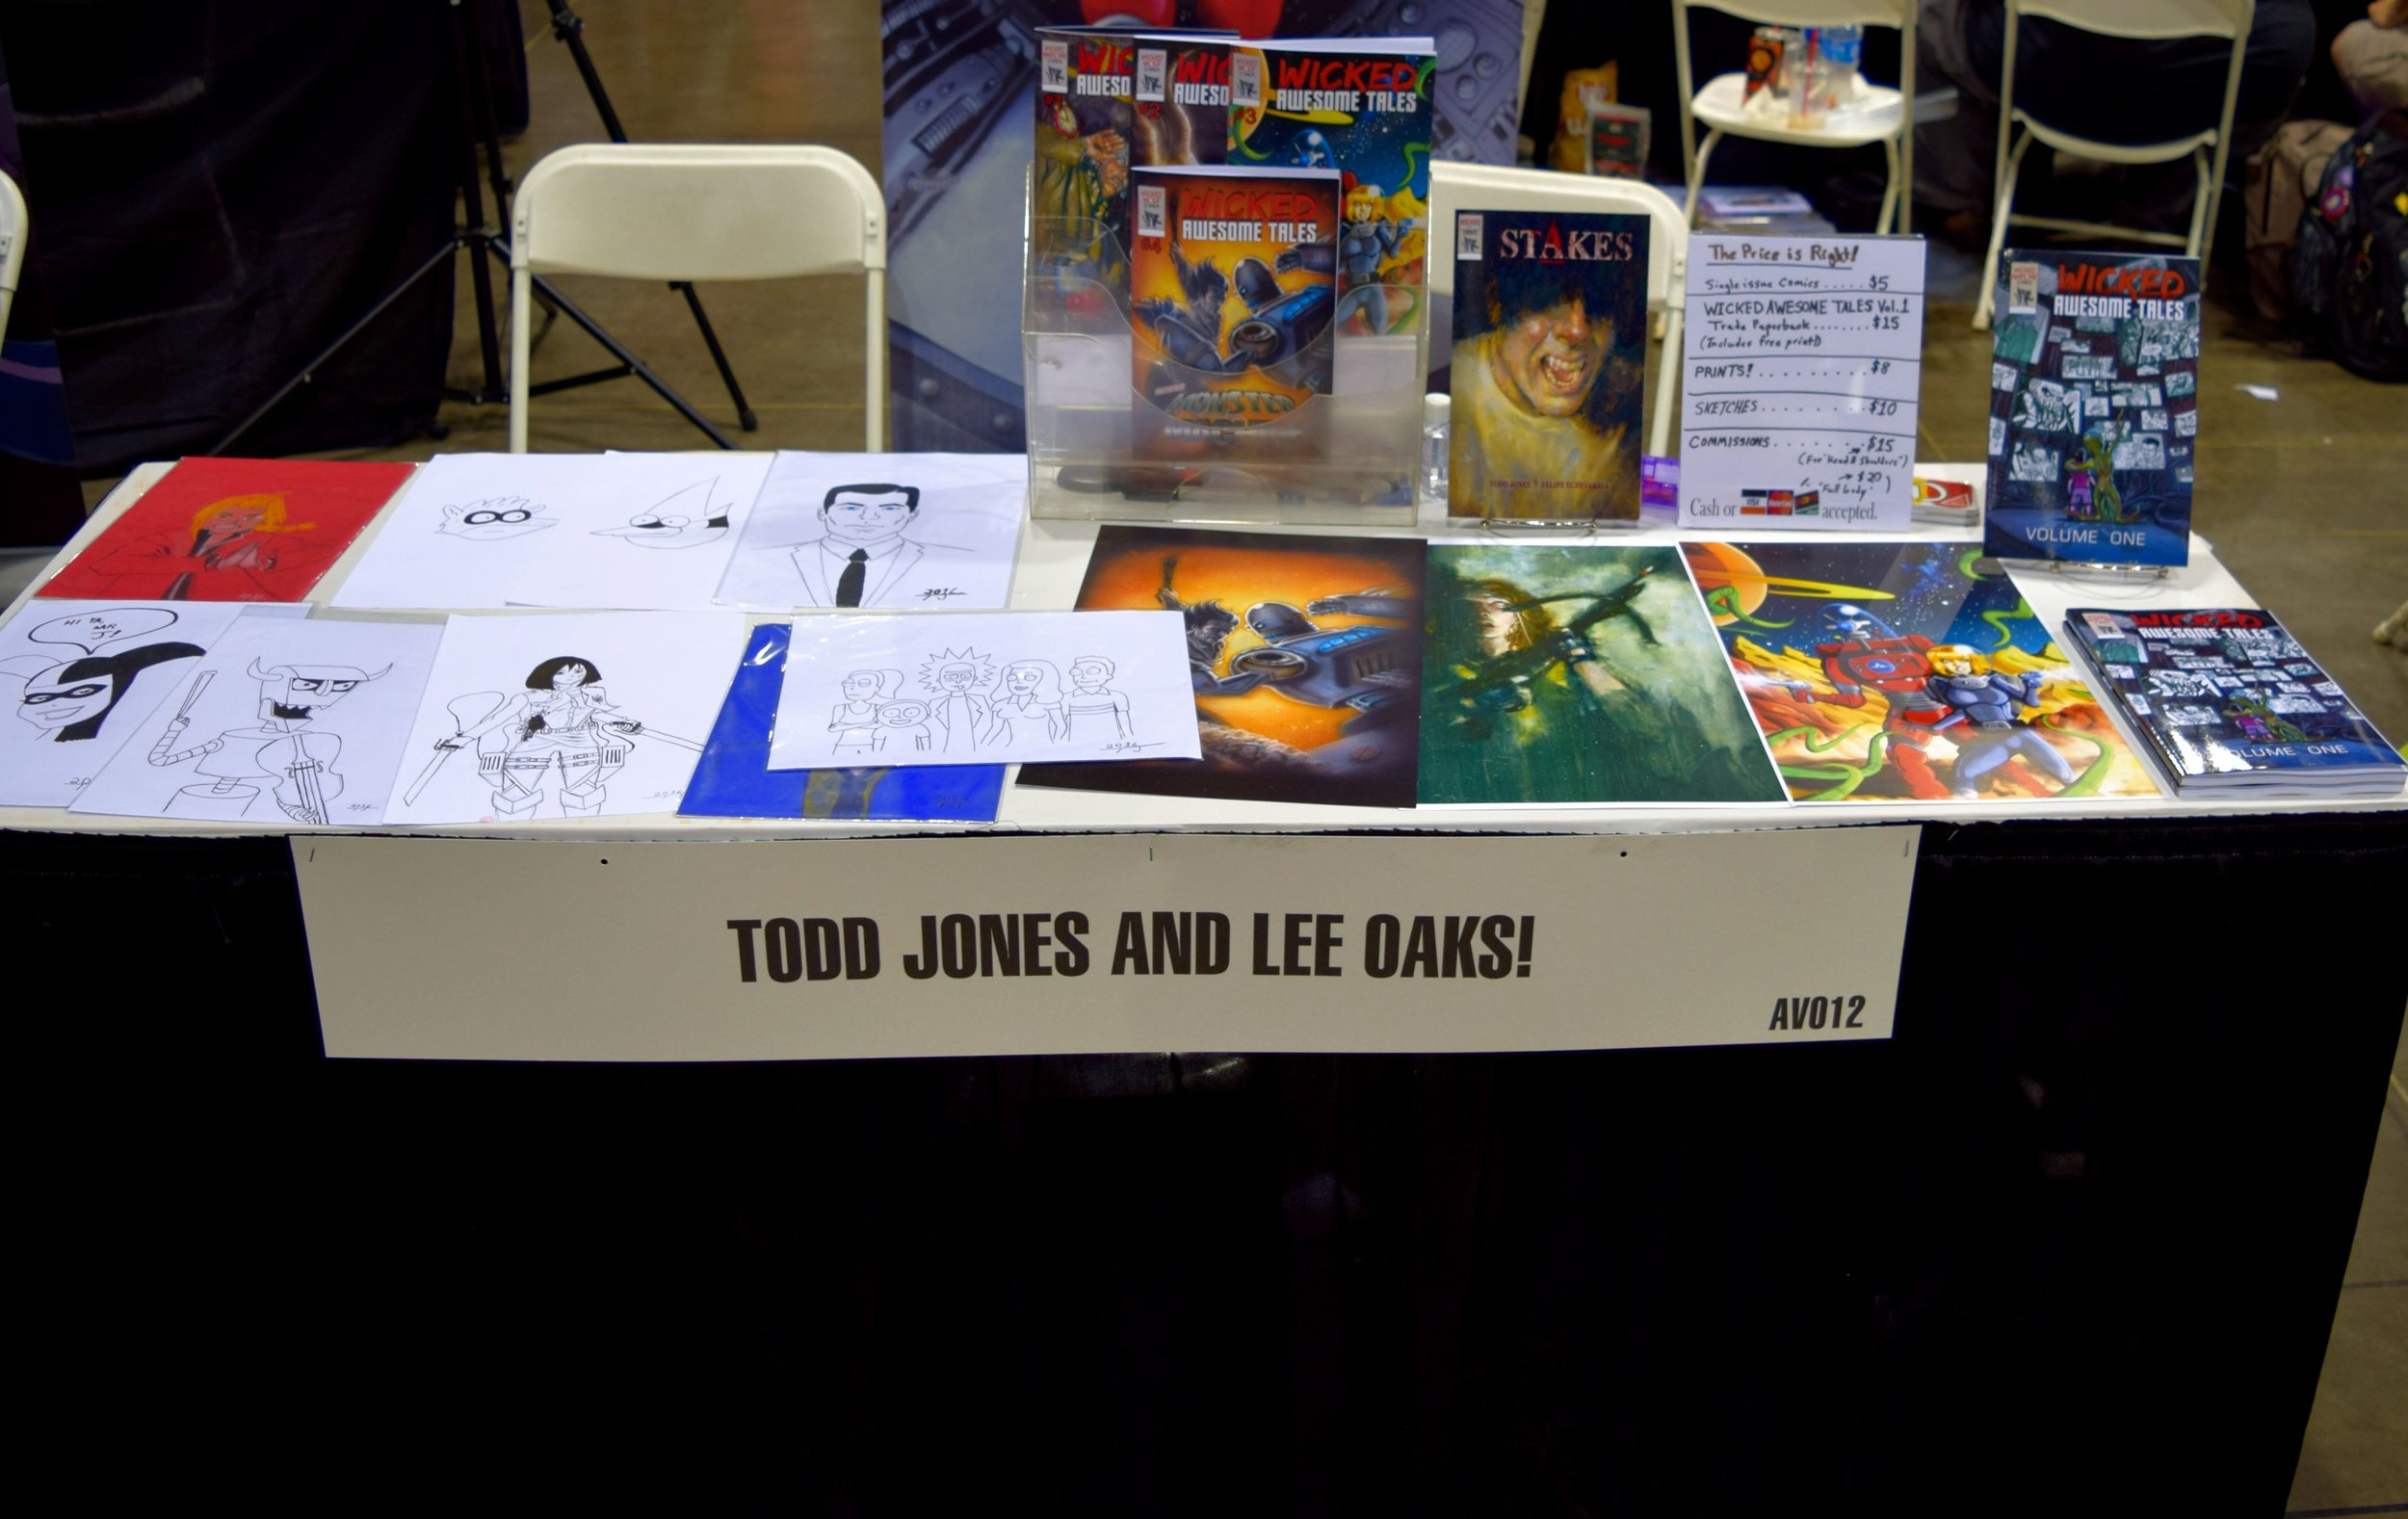 Wicked Awesome comics and prints at Denver Comic Con 2016.